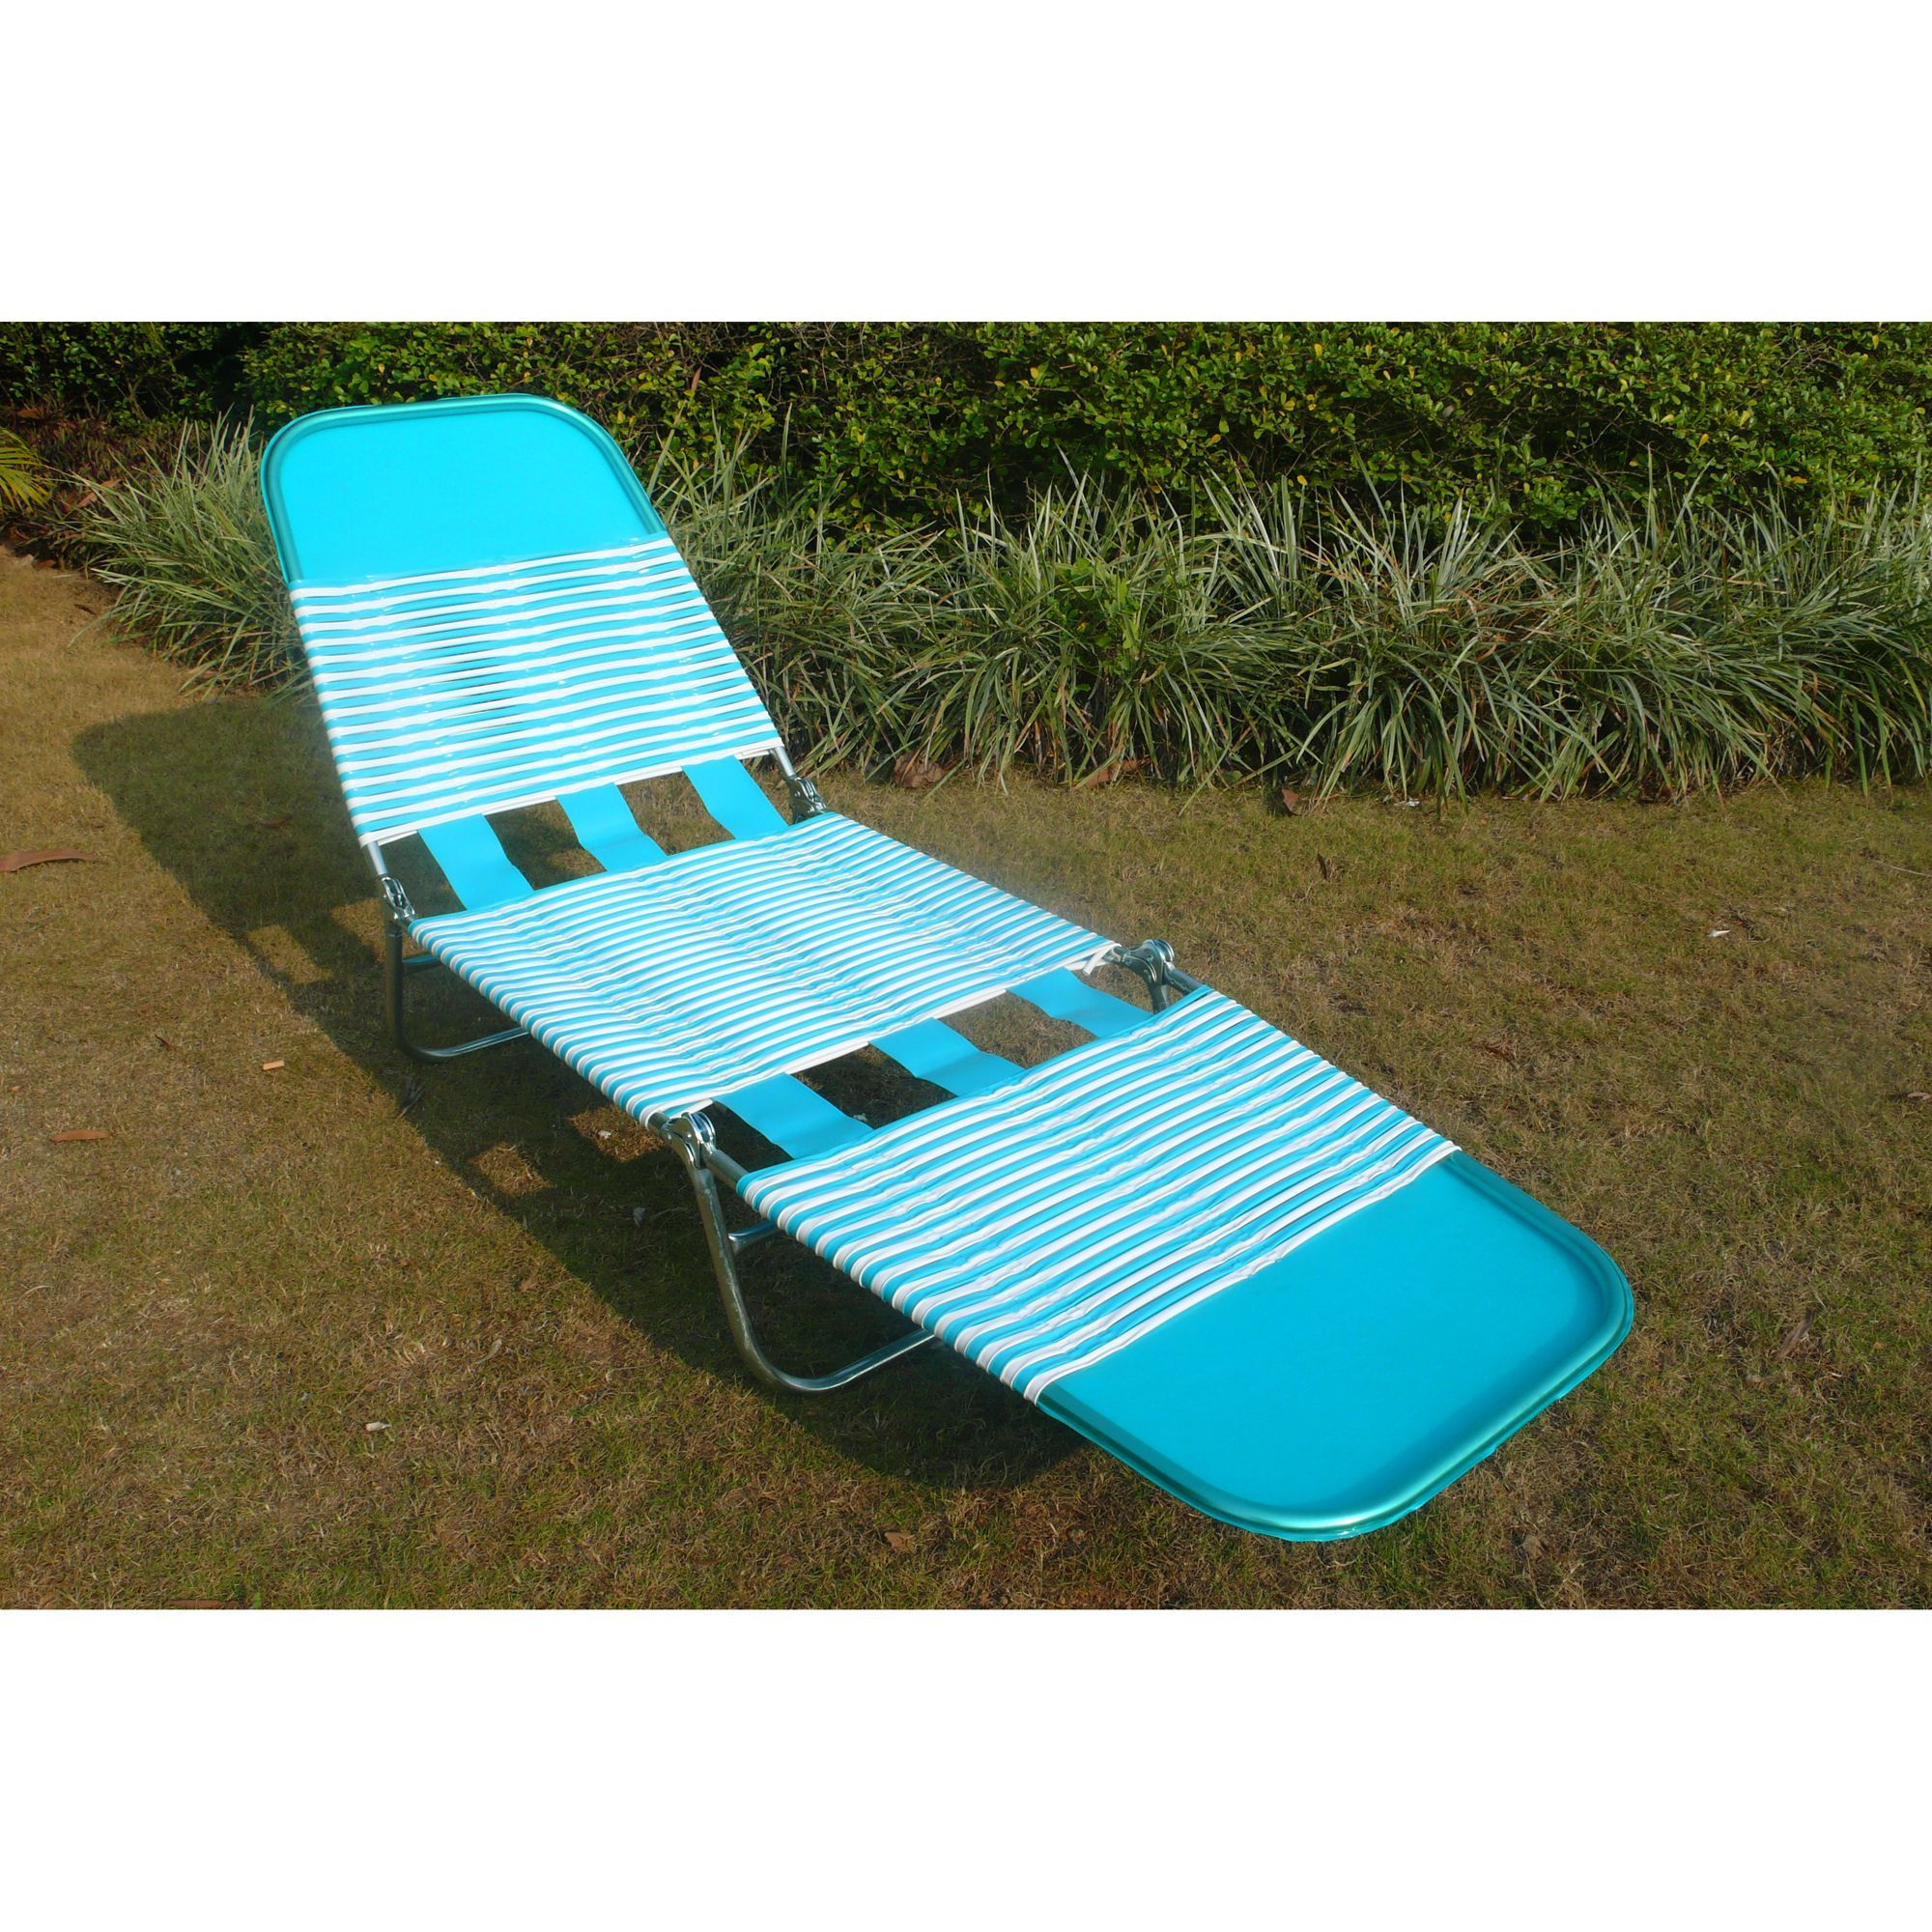 Chaise Lounge Chair Turquoise Childhood Memories Childhood My Childhood Memories